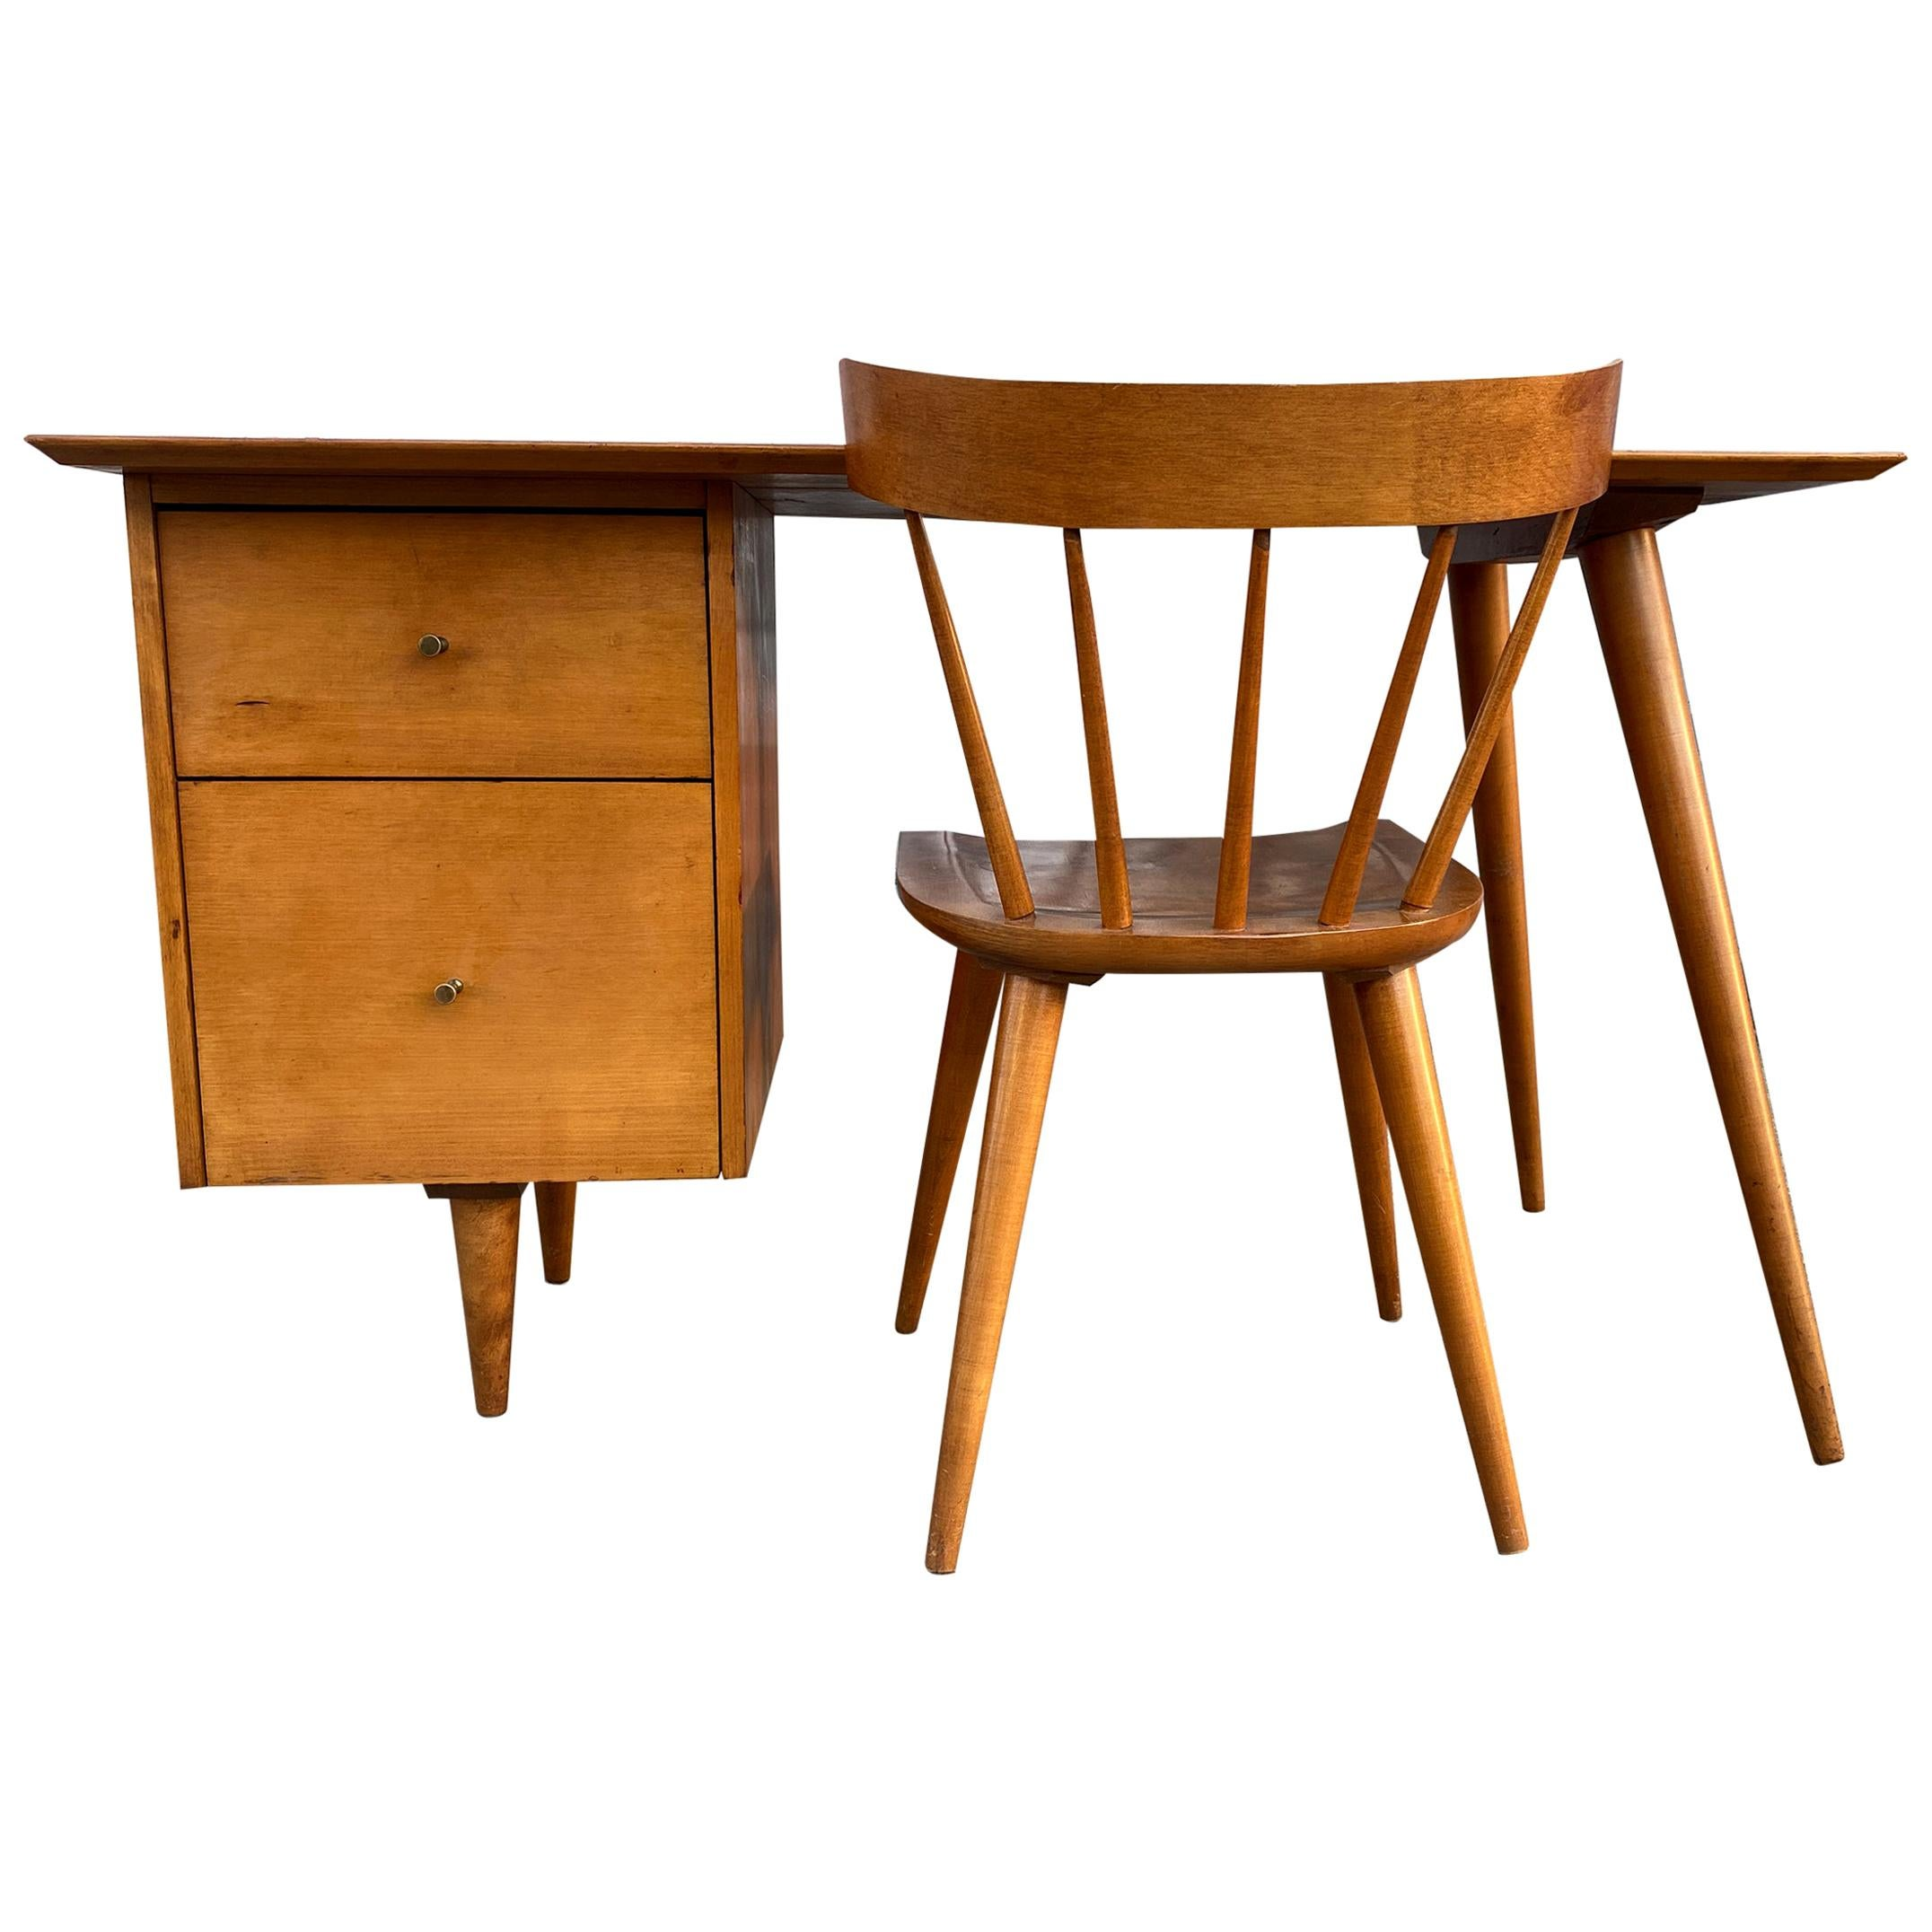 Midcentury Paul McCobb #1560 Double Drawer Desk Tobacco Maple Finish with Chair